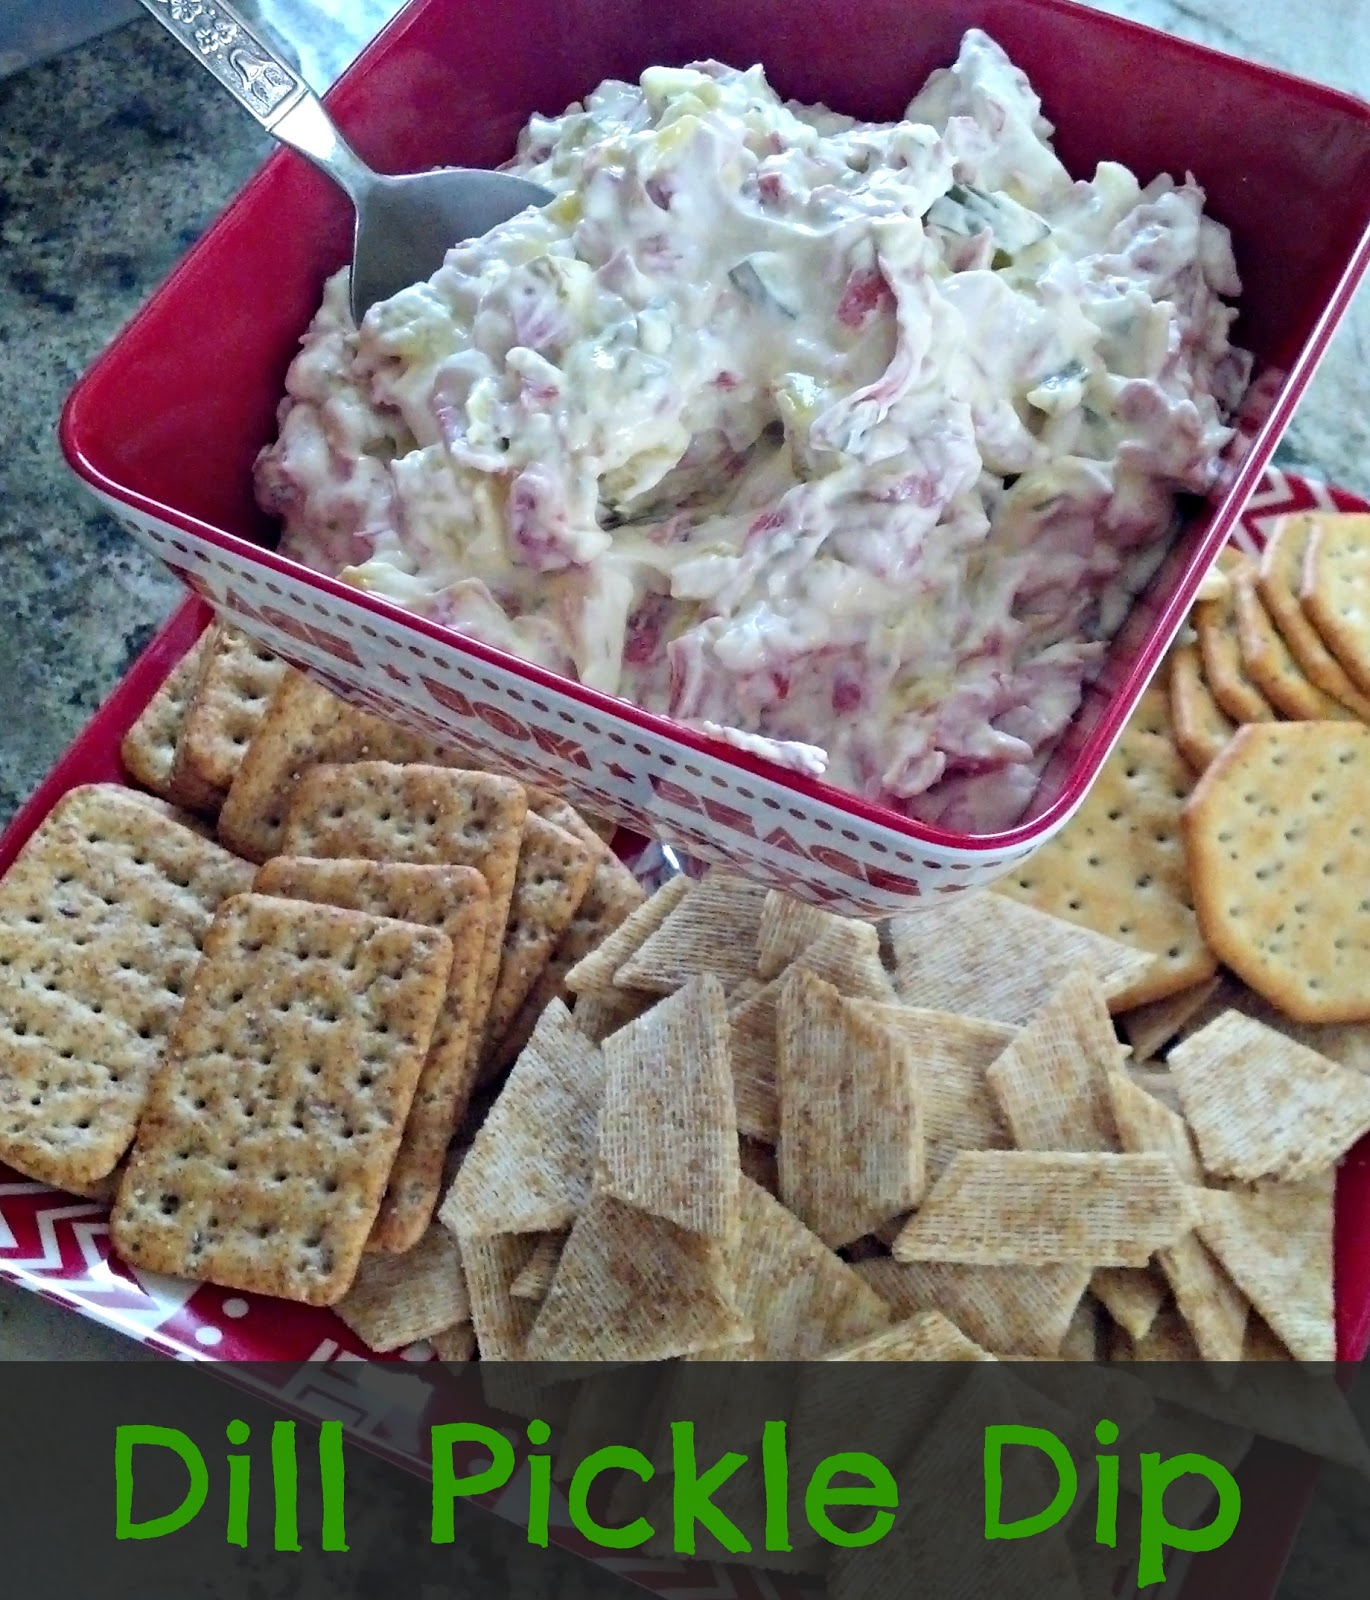 Dill Pickle Dip: Crazylou: Awesome Dill Pickle Dip